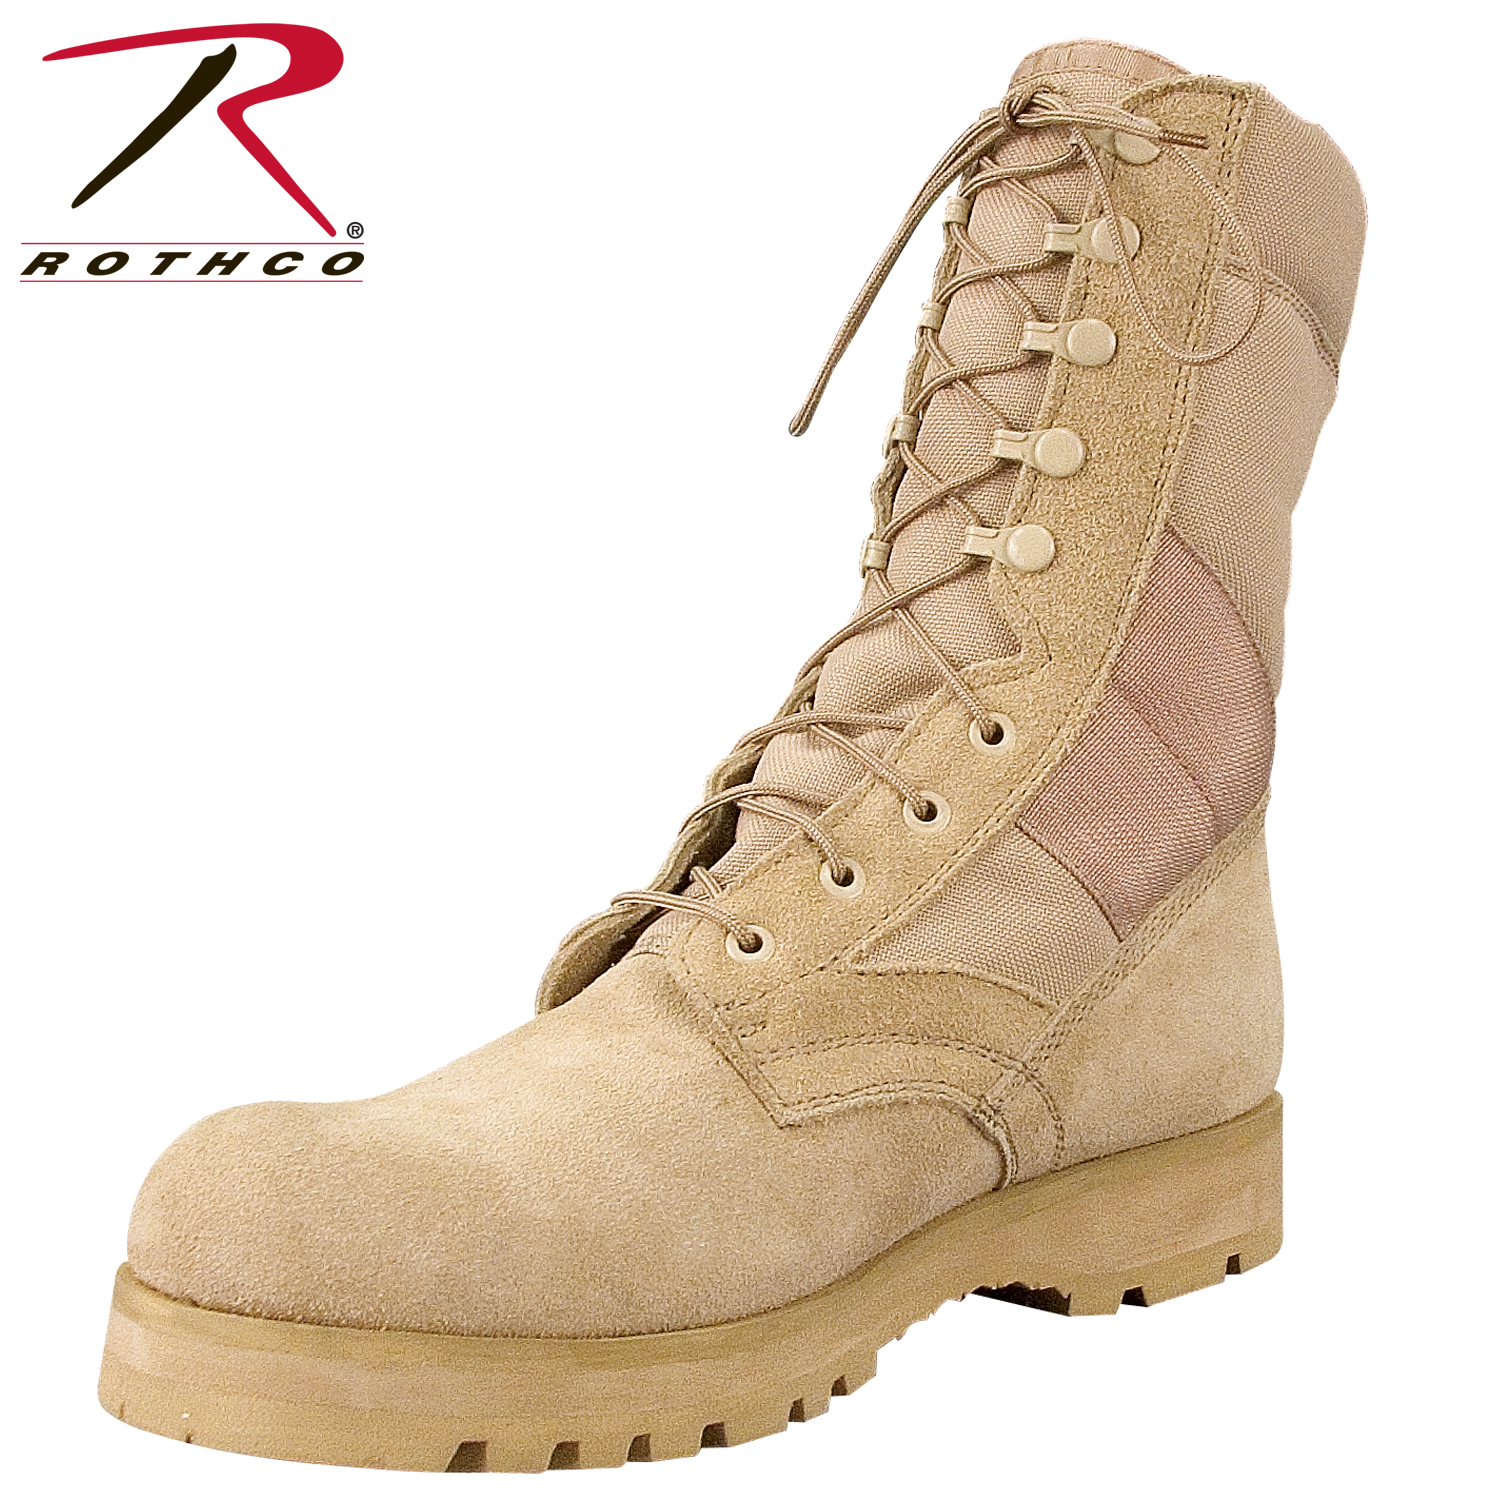 Favoloso Military Boots & Tactical Boots from Rothco VD21